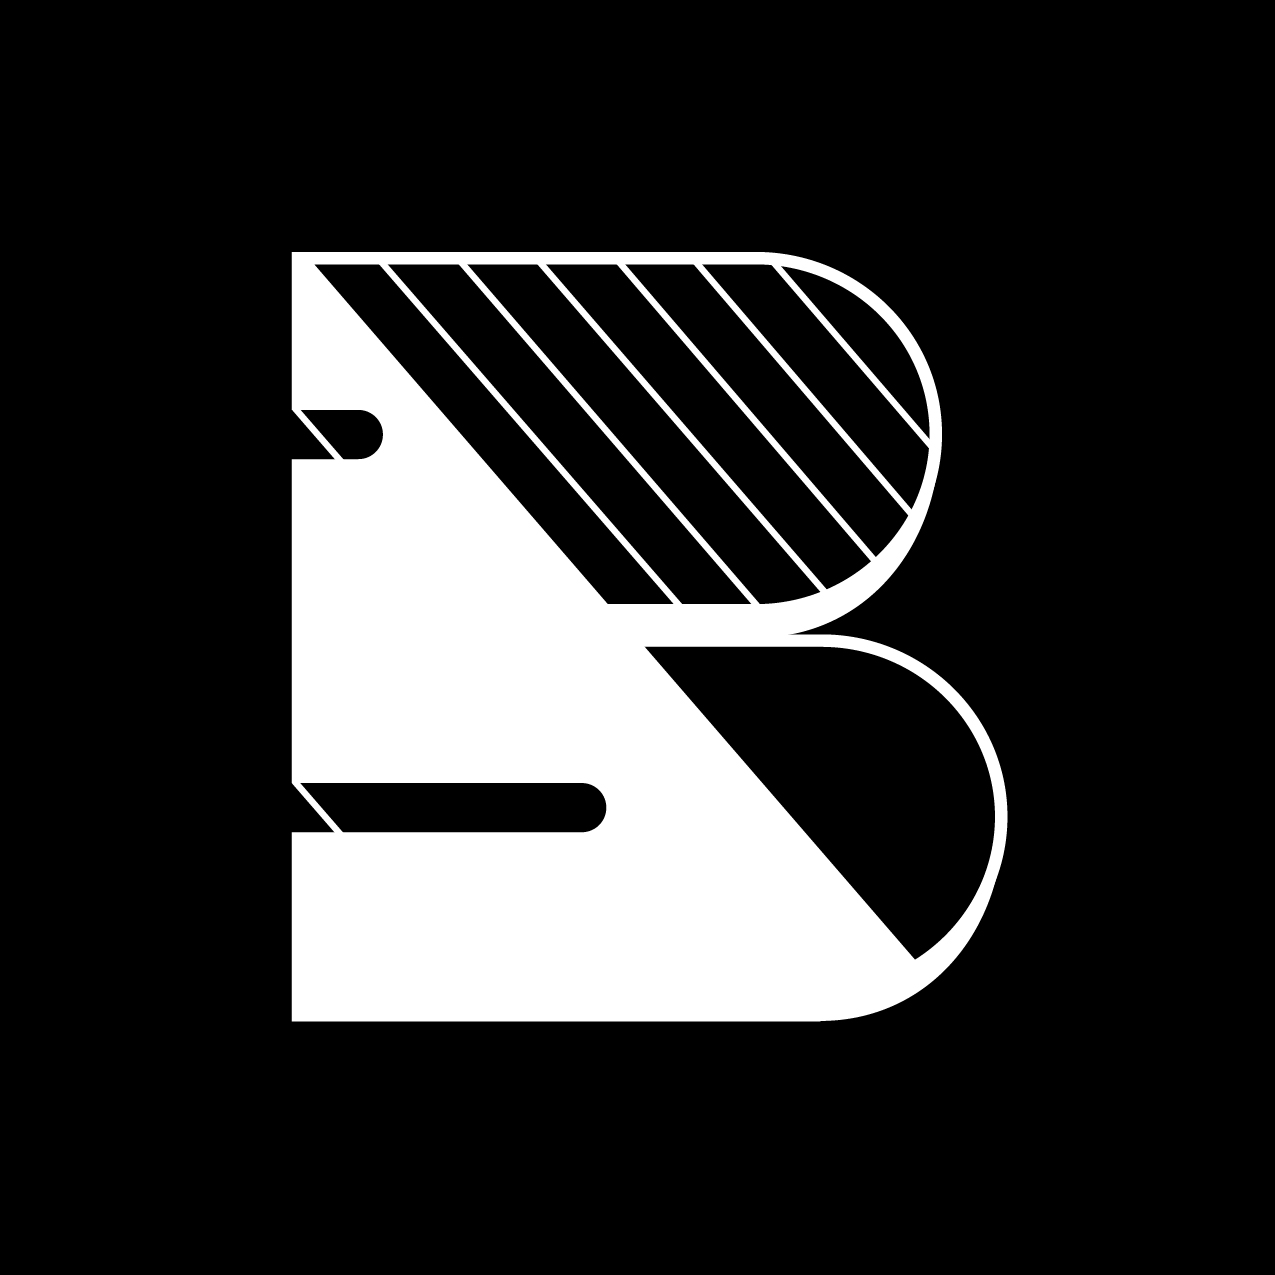 Letter B8 design by Furia